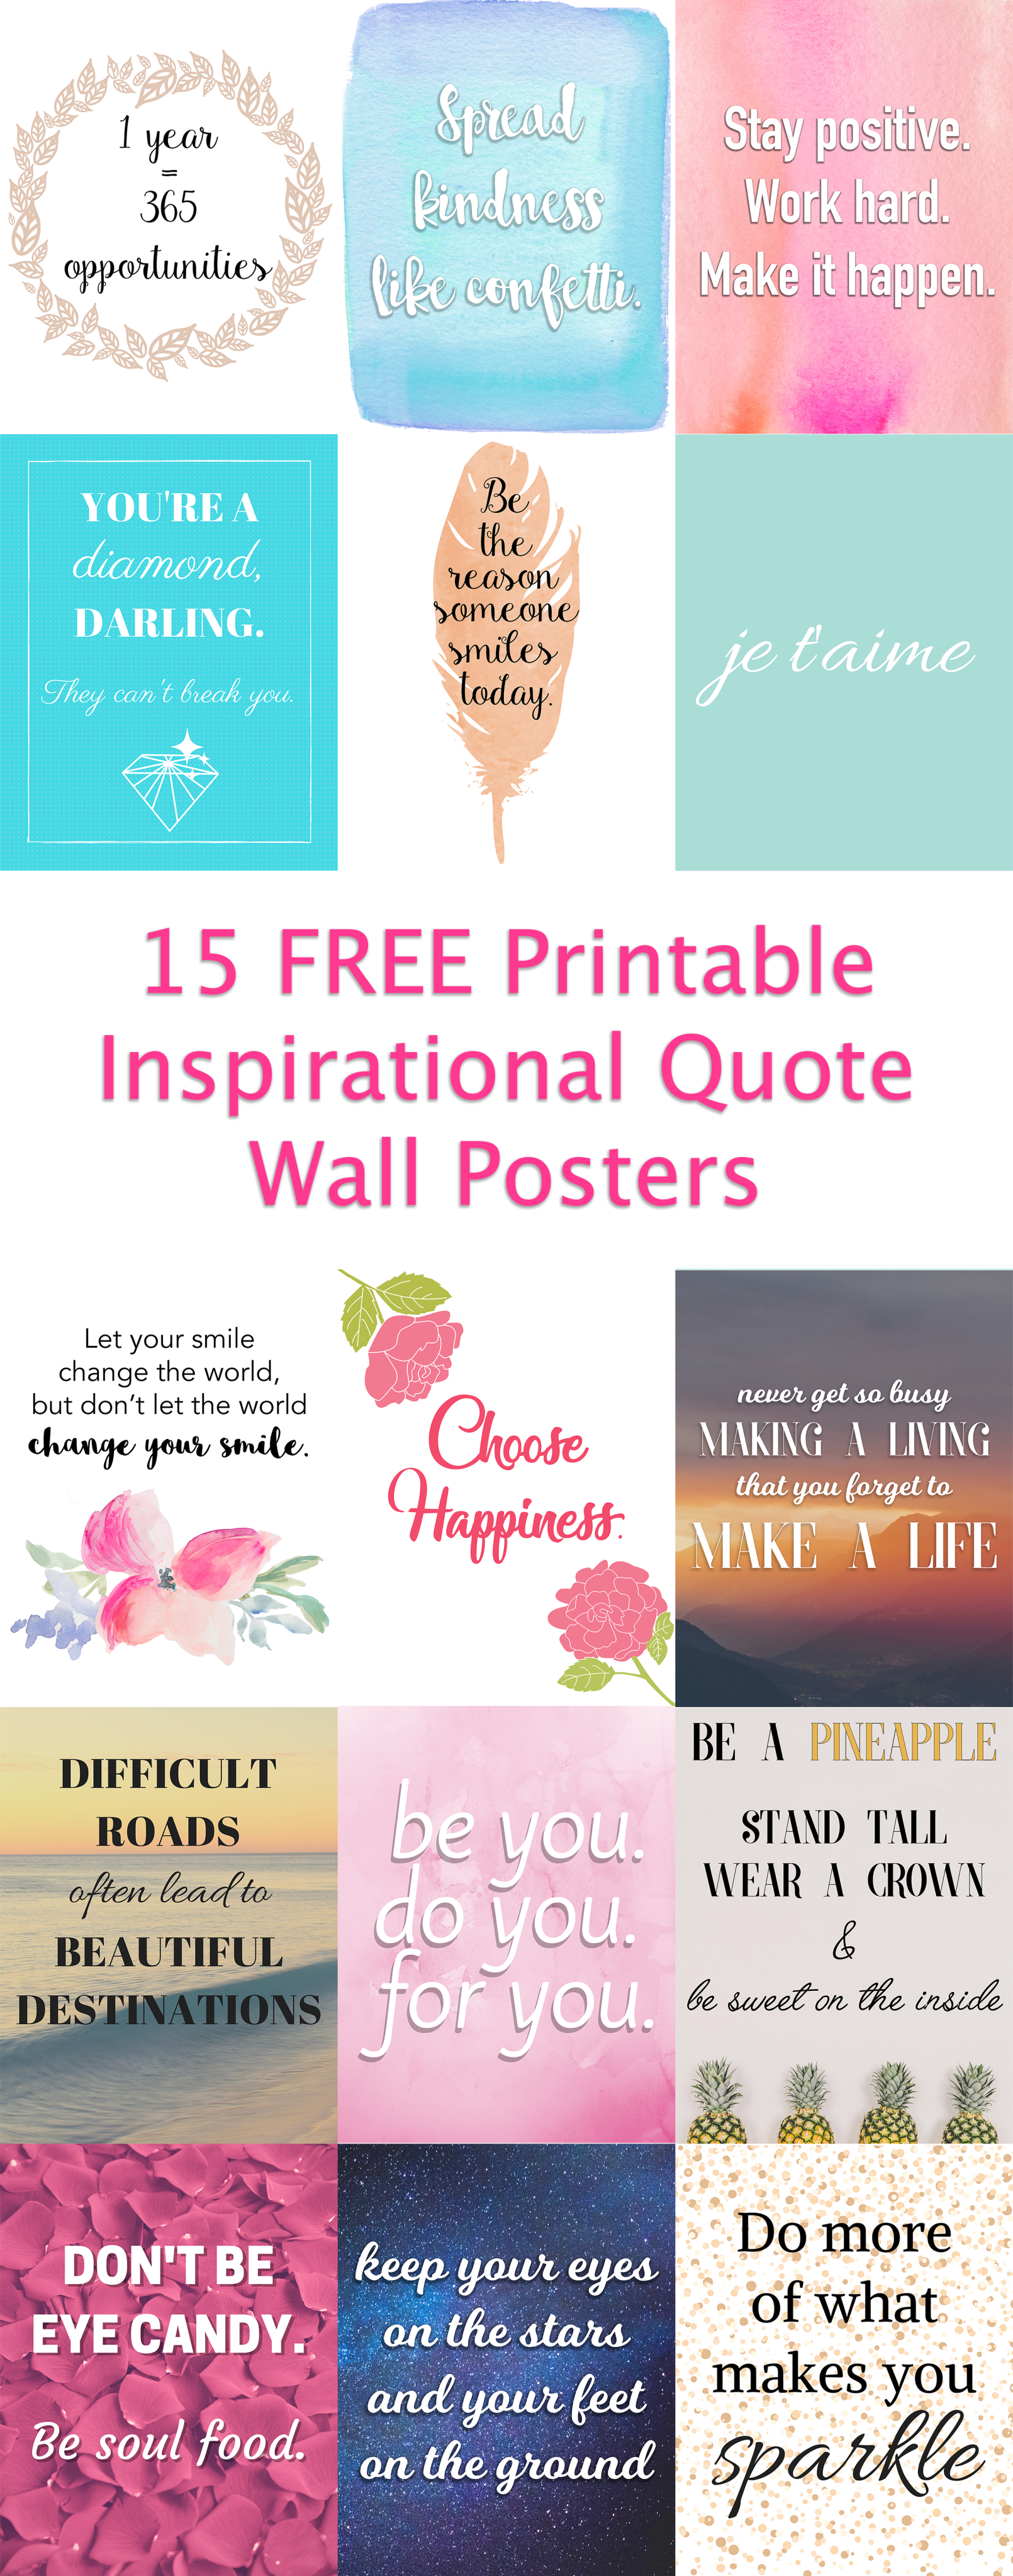 picture relating to Free Printable Inspirational Posters named 15 Absolutely free Printable Inspirational Quotation Posters! Style and design of